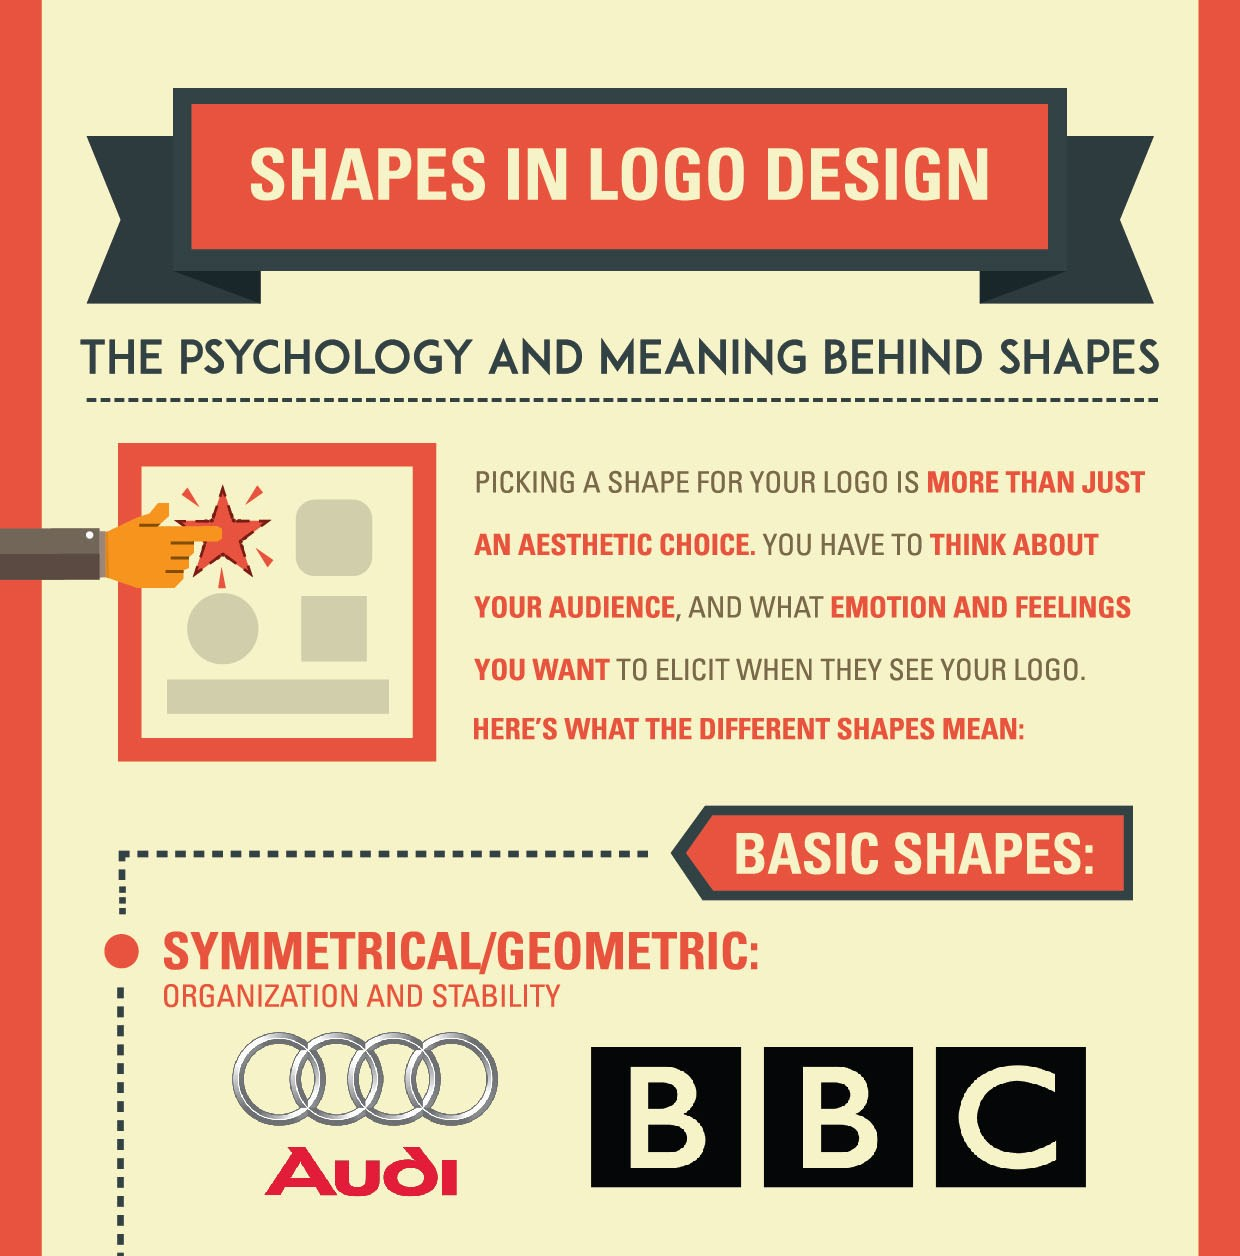 shapes in logo design  the psychology meaning behind logo